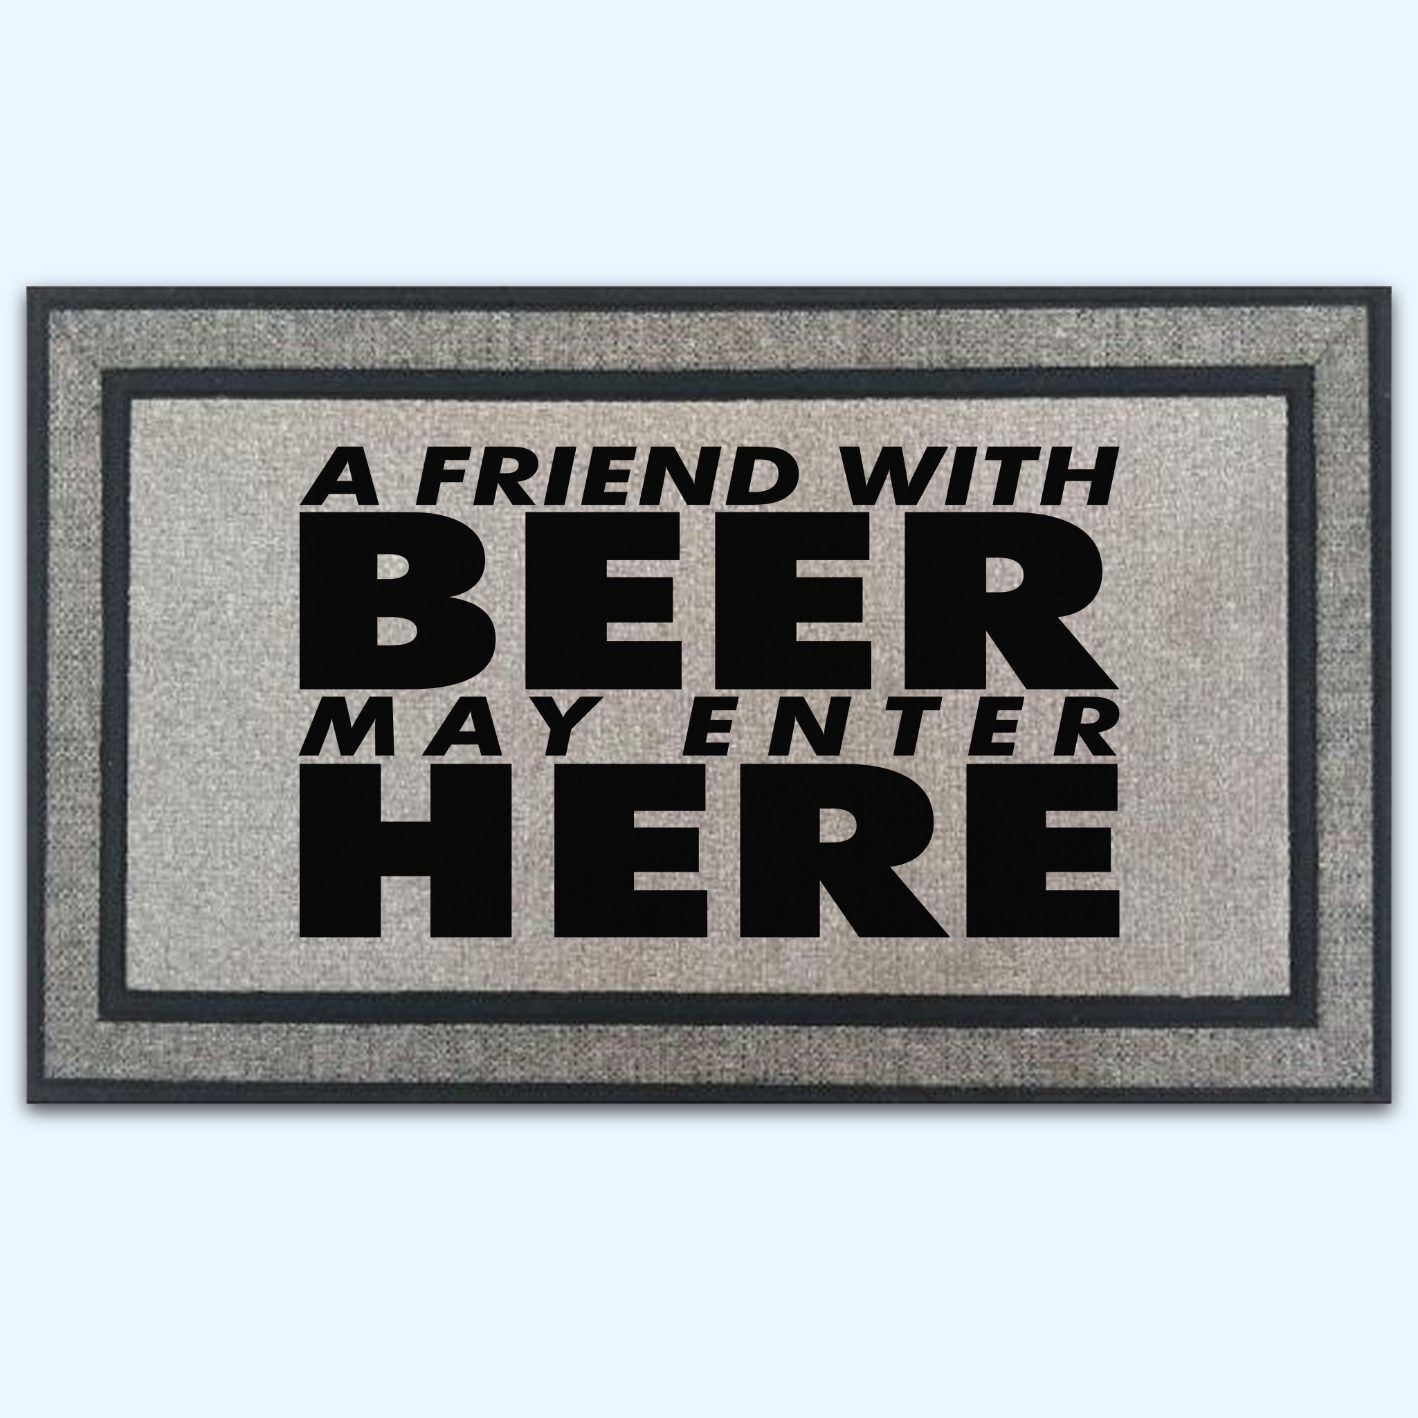 A Friend With Beer May Enter Here Door Mat